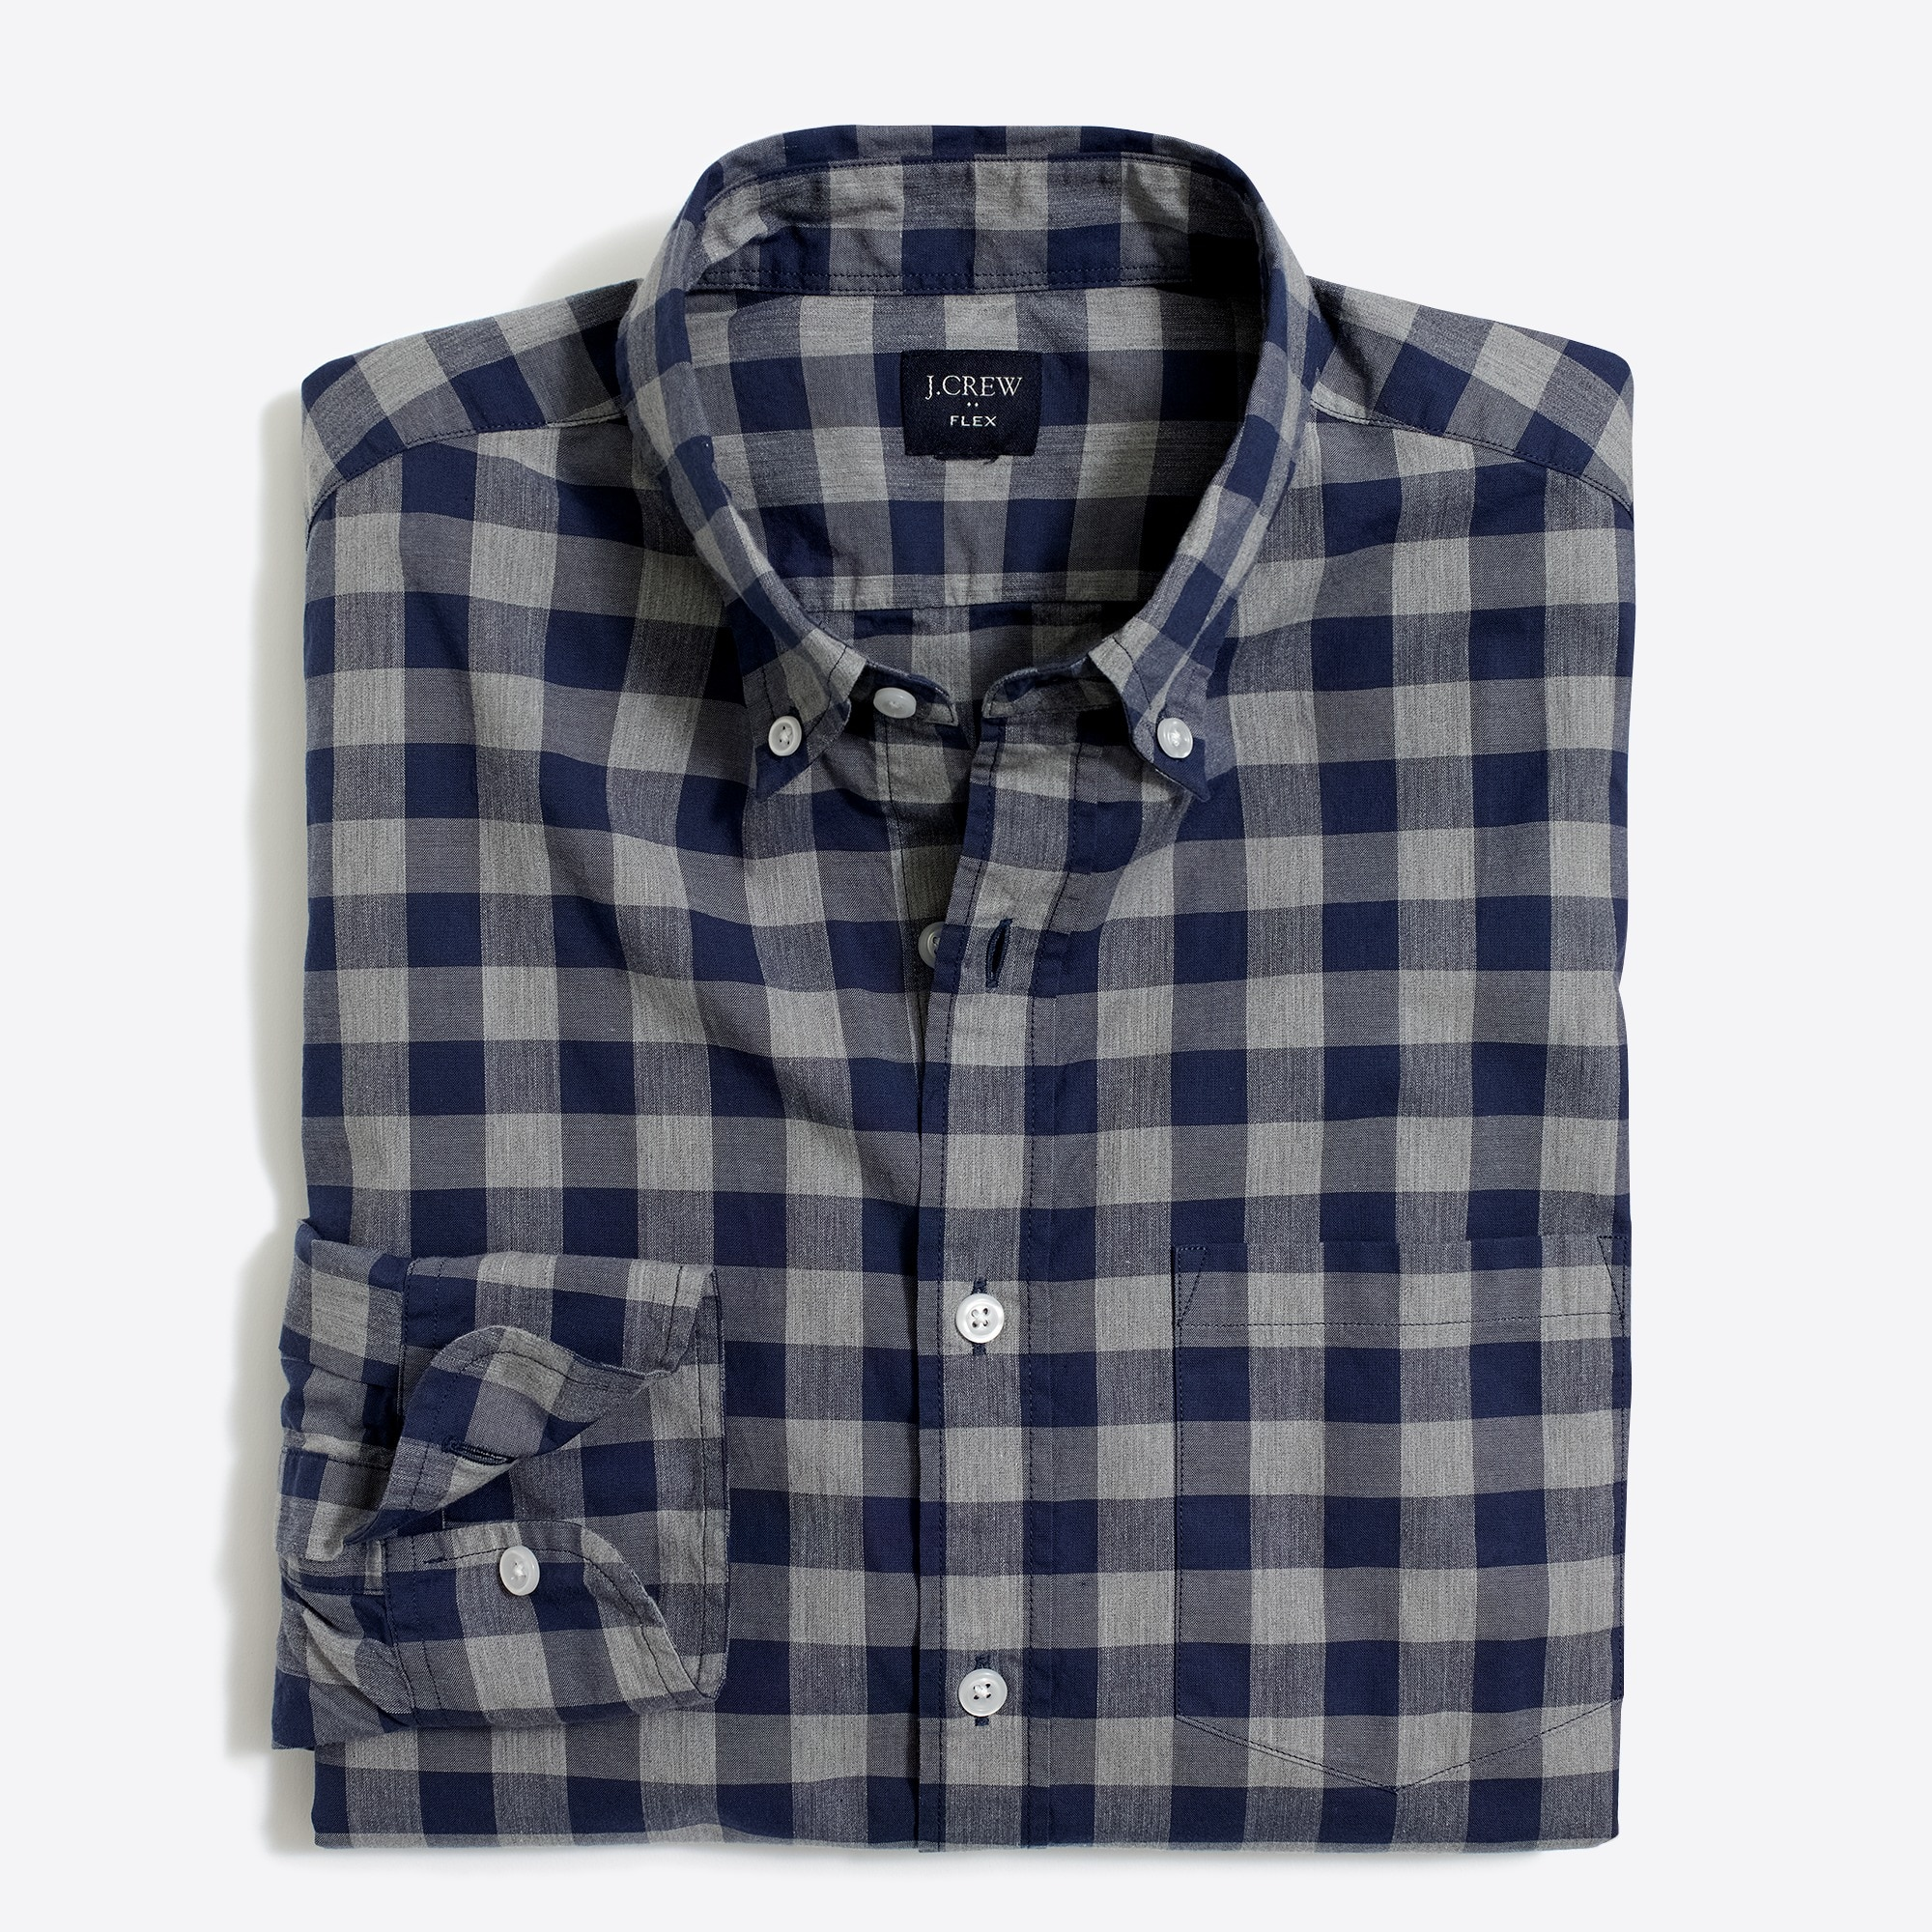 Classic flex heather washed shirt in gingham